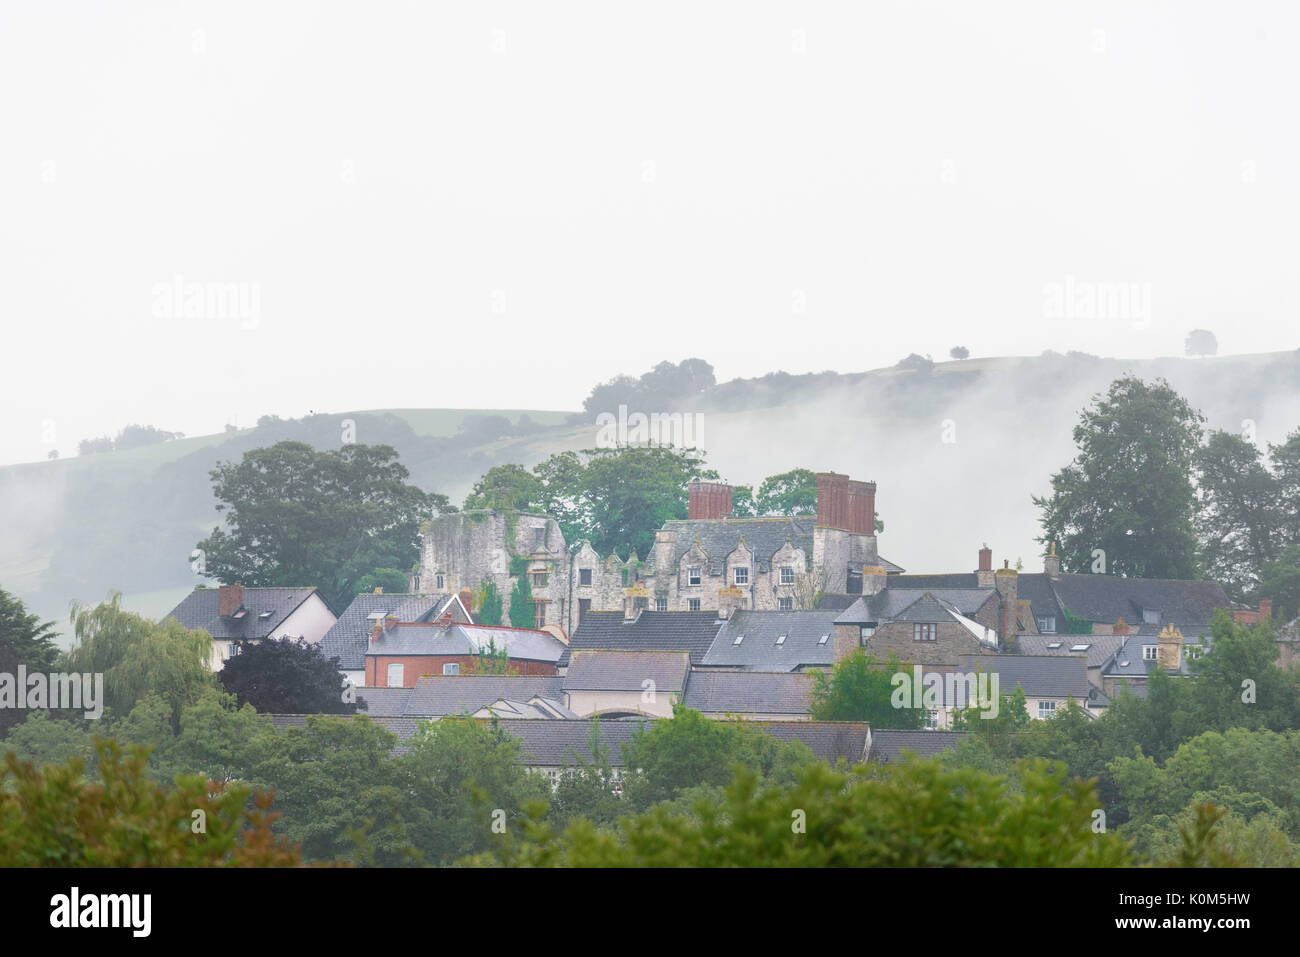 Morning mist surrounds the abandoned castle and houses at Hay on Wye, a small town on the border of England and Wales. - Stock Image